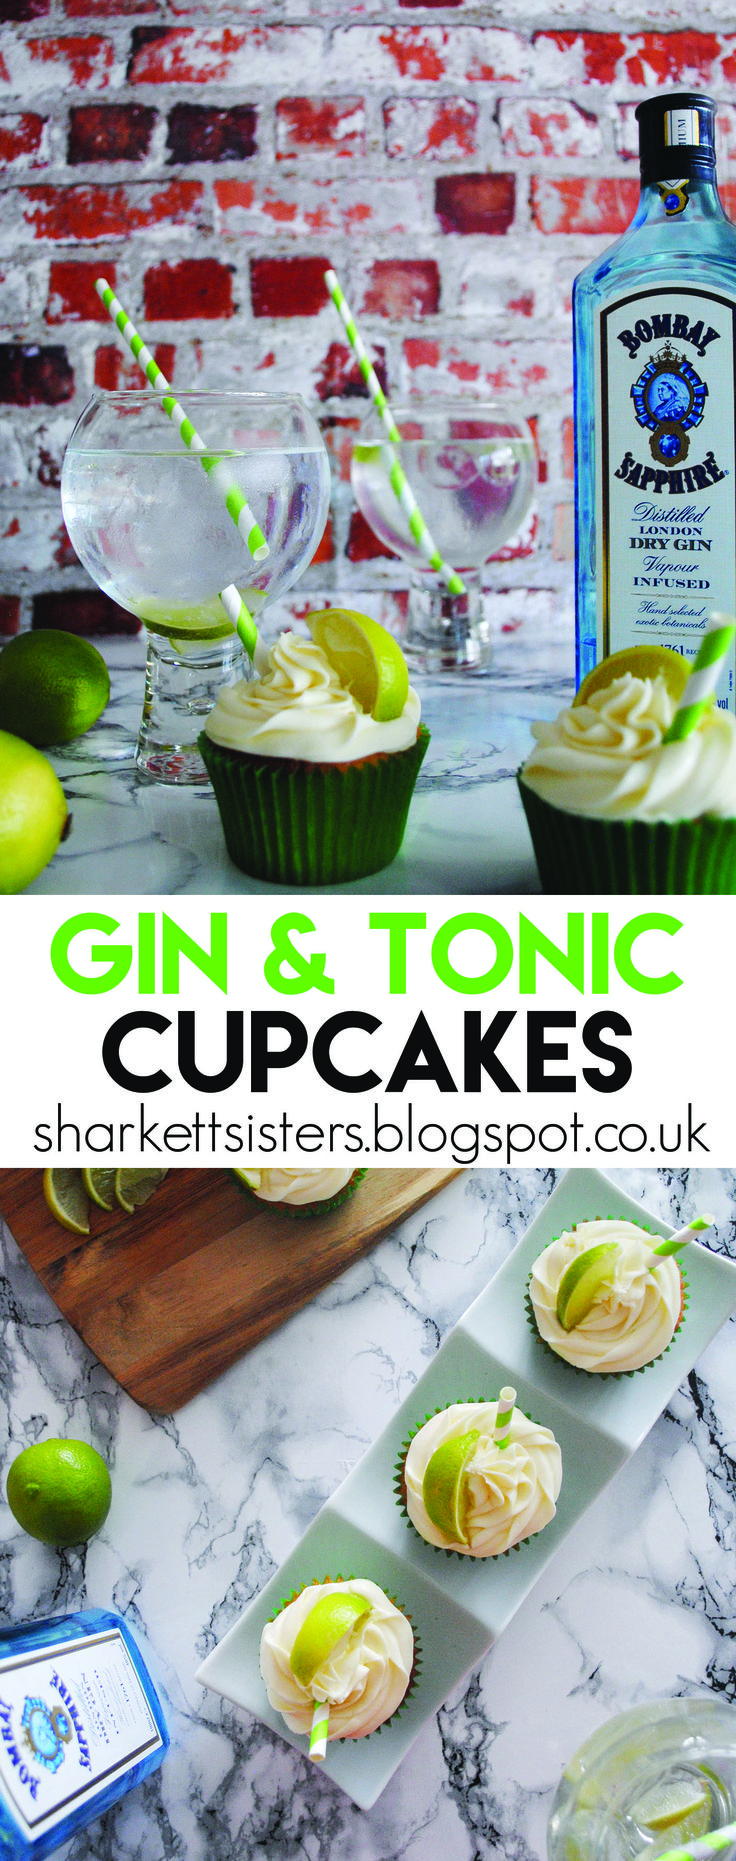 Gin & Tonic cupcakes!  http://sharkettsisters.blogspot.co.uk/2016/07/cocktail-cupcakes-gin-and-tonic.html